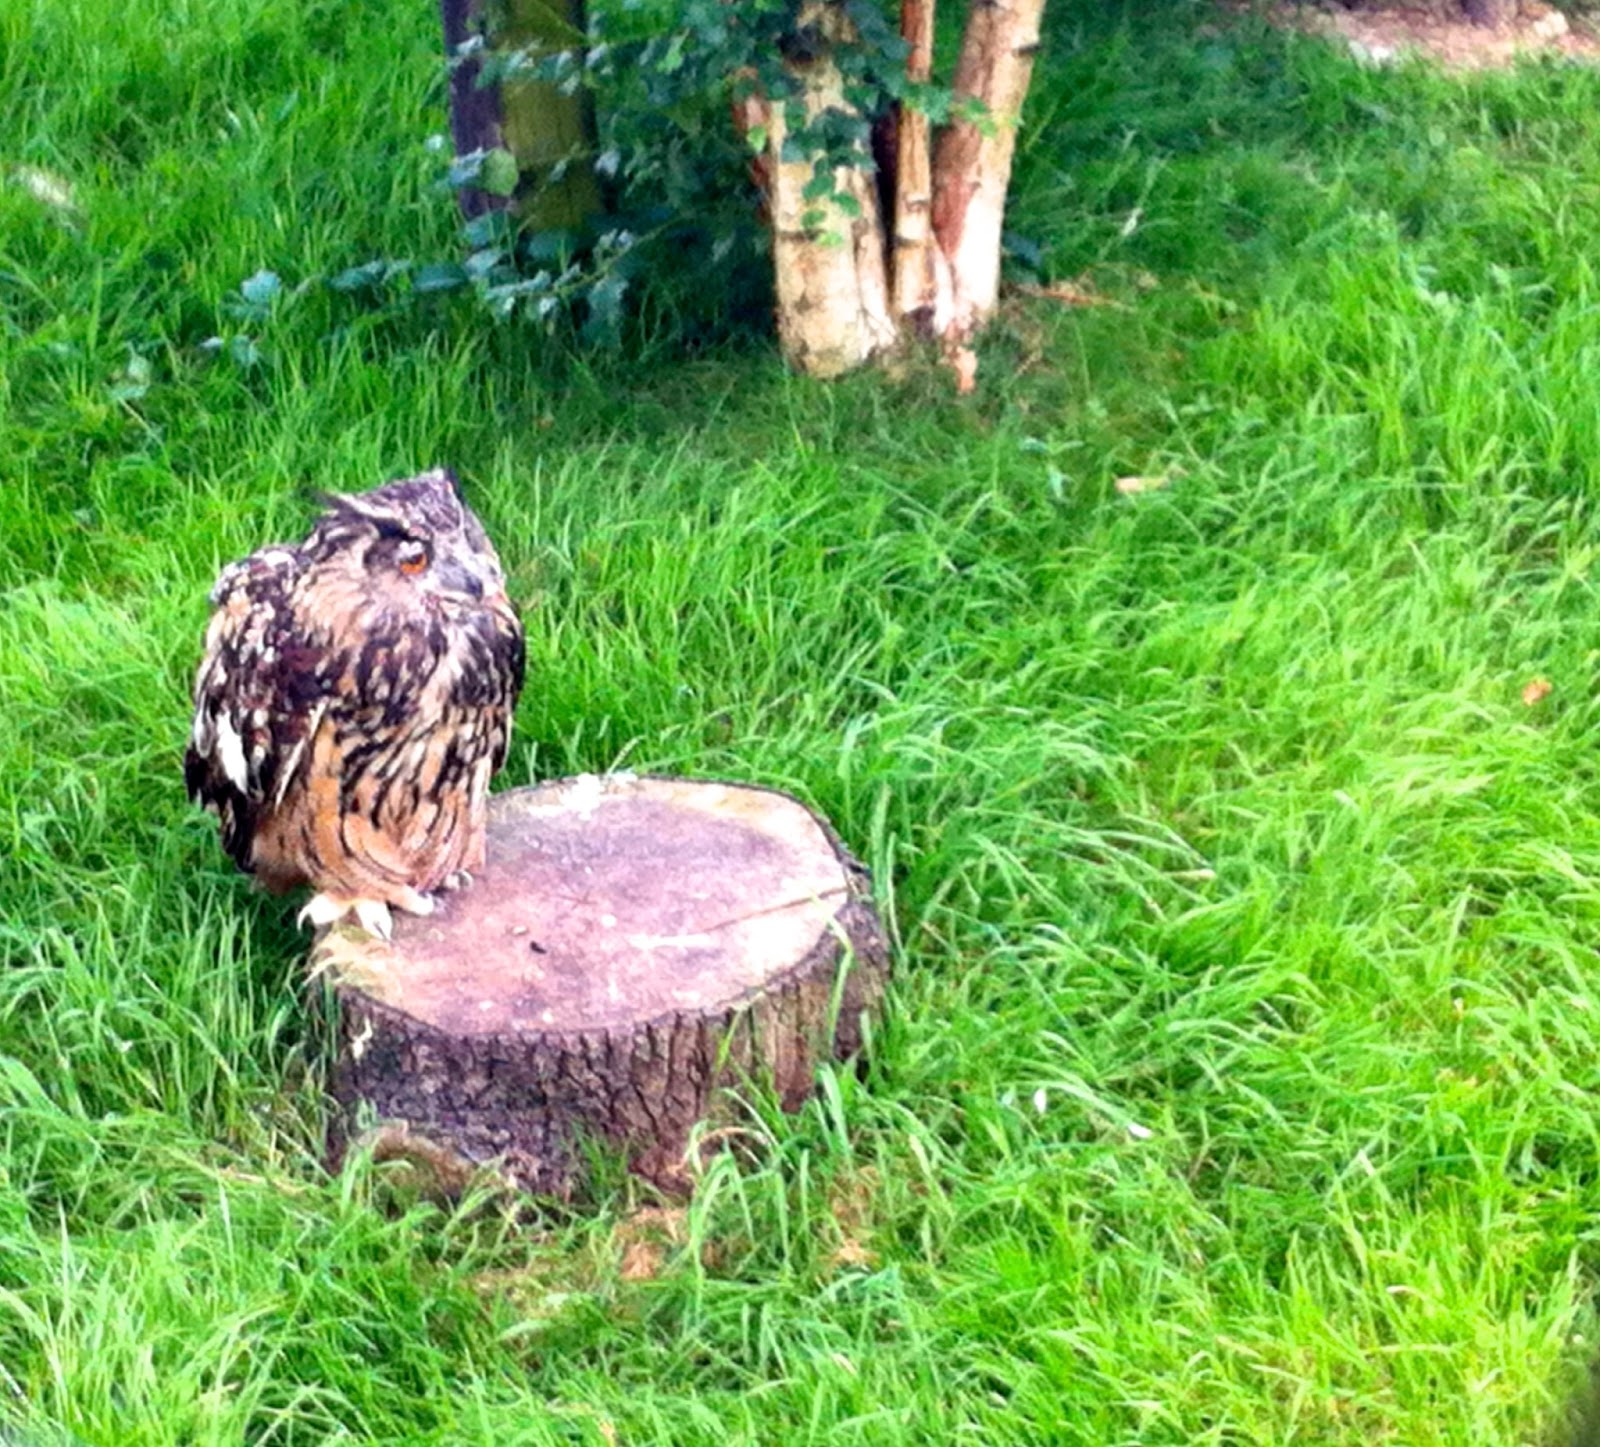 Owl on a tree stump